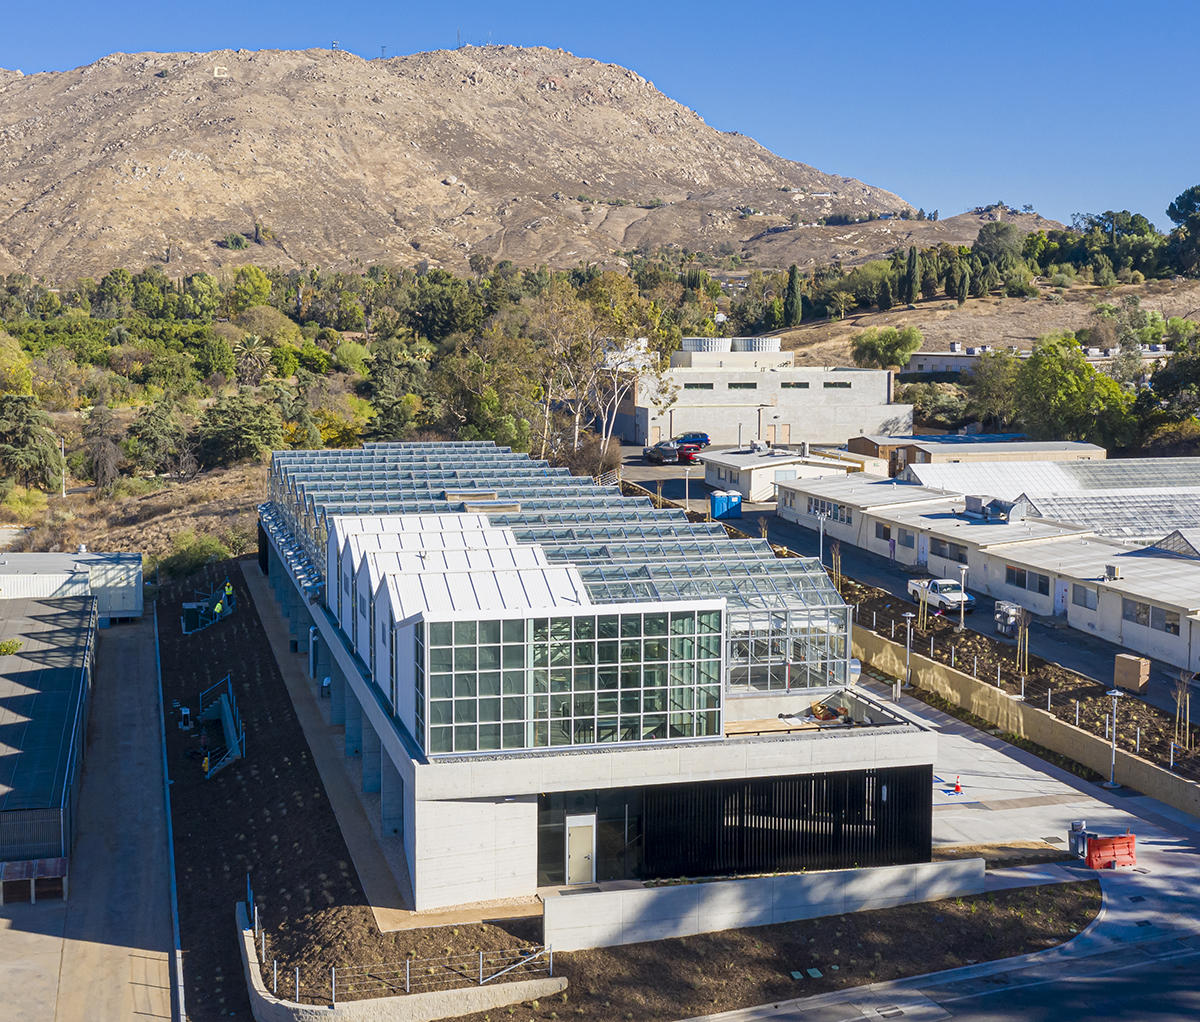 Giroux Glass Contributes Complex Glass, Problem-Solving to UC Greenhouse Project